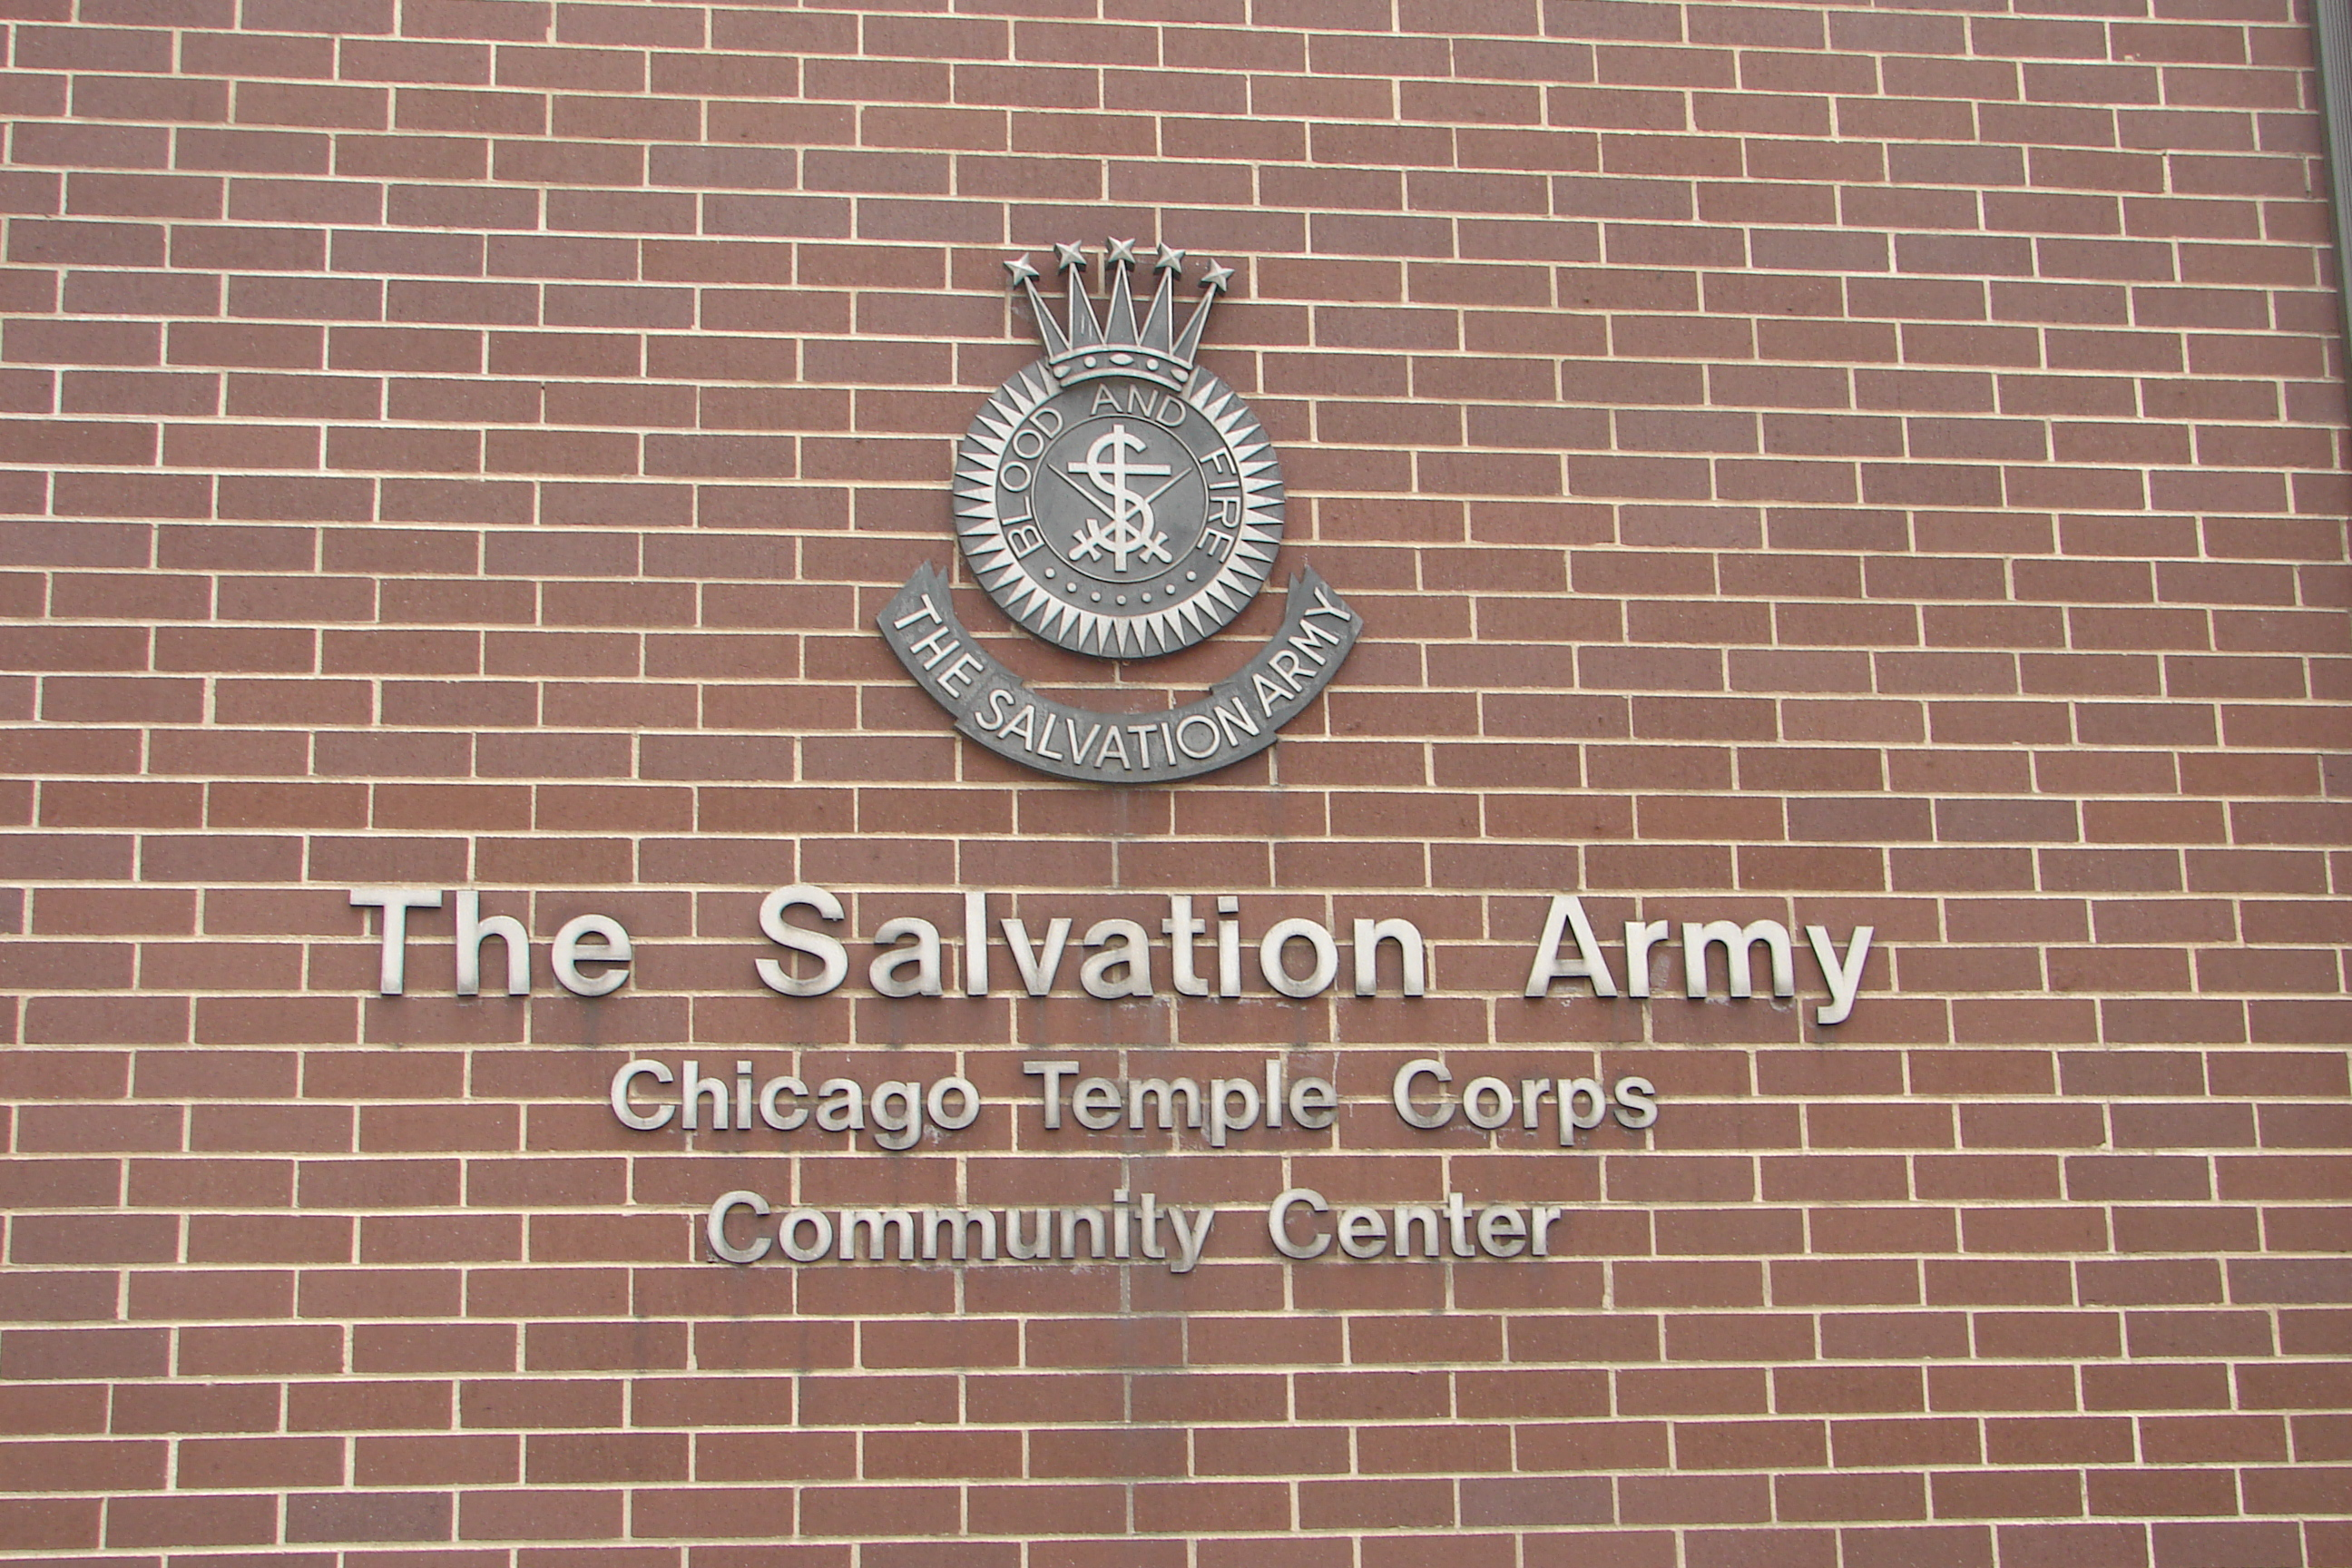 The Salvation Army sign on side of brick wall